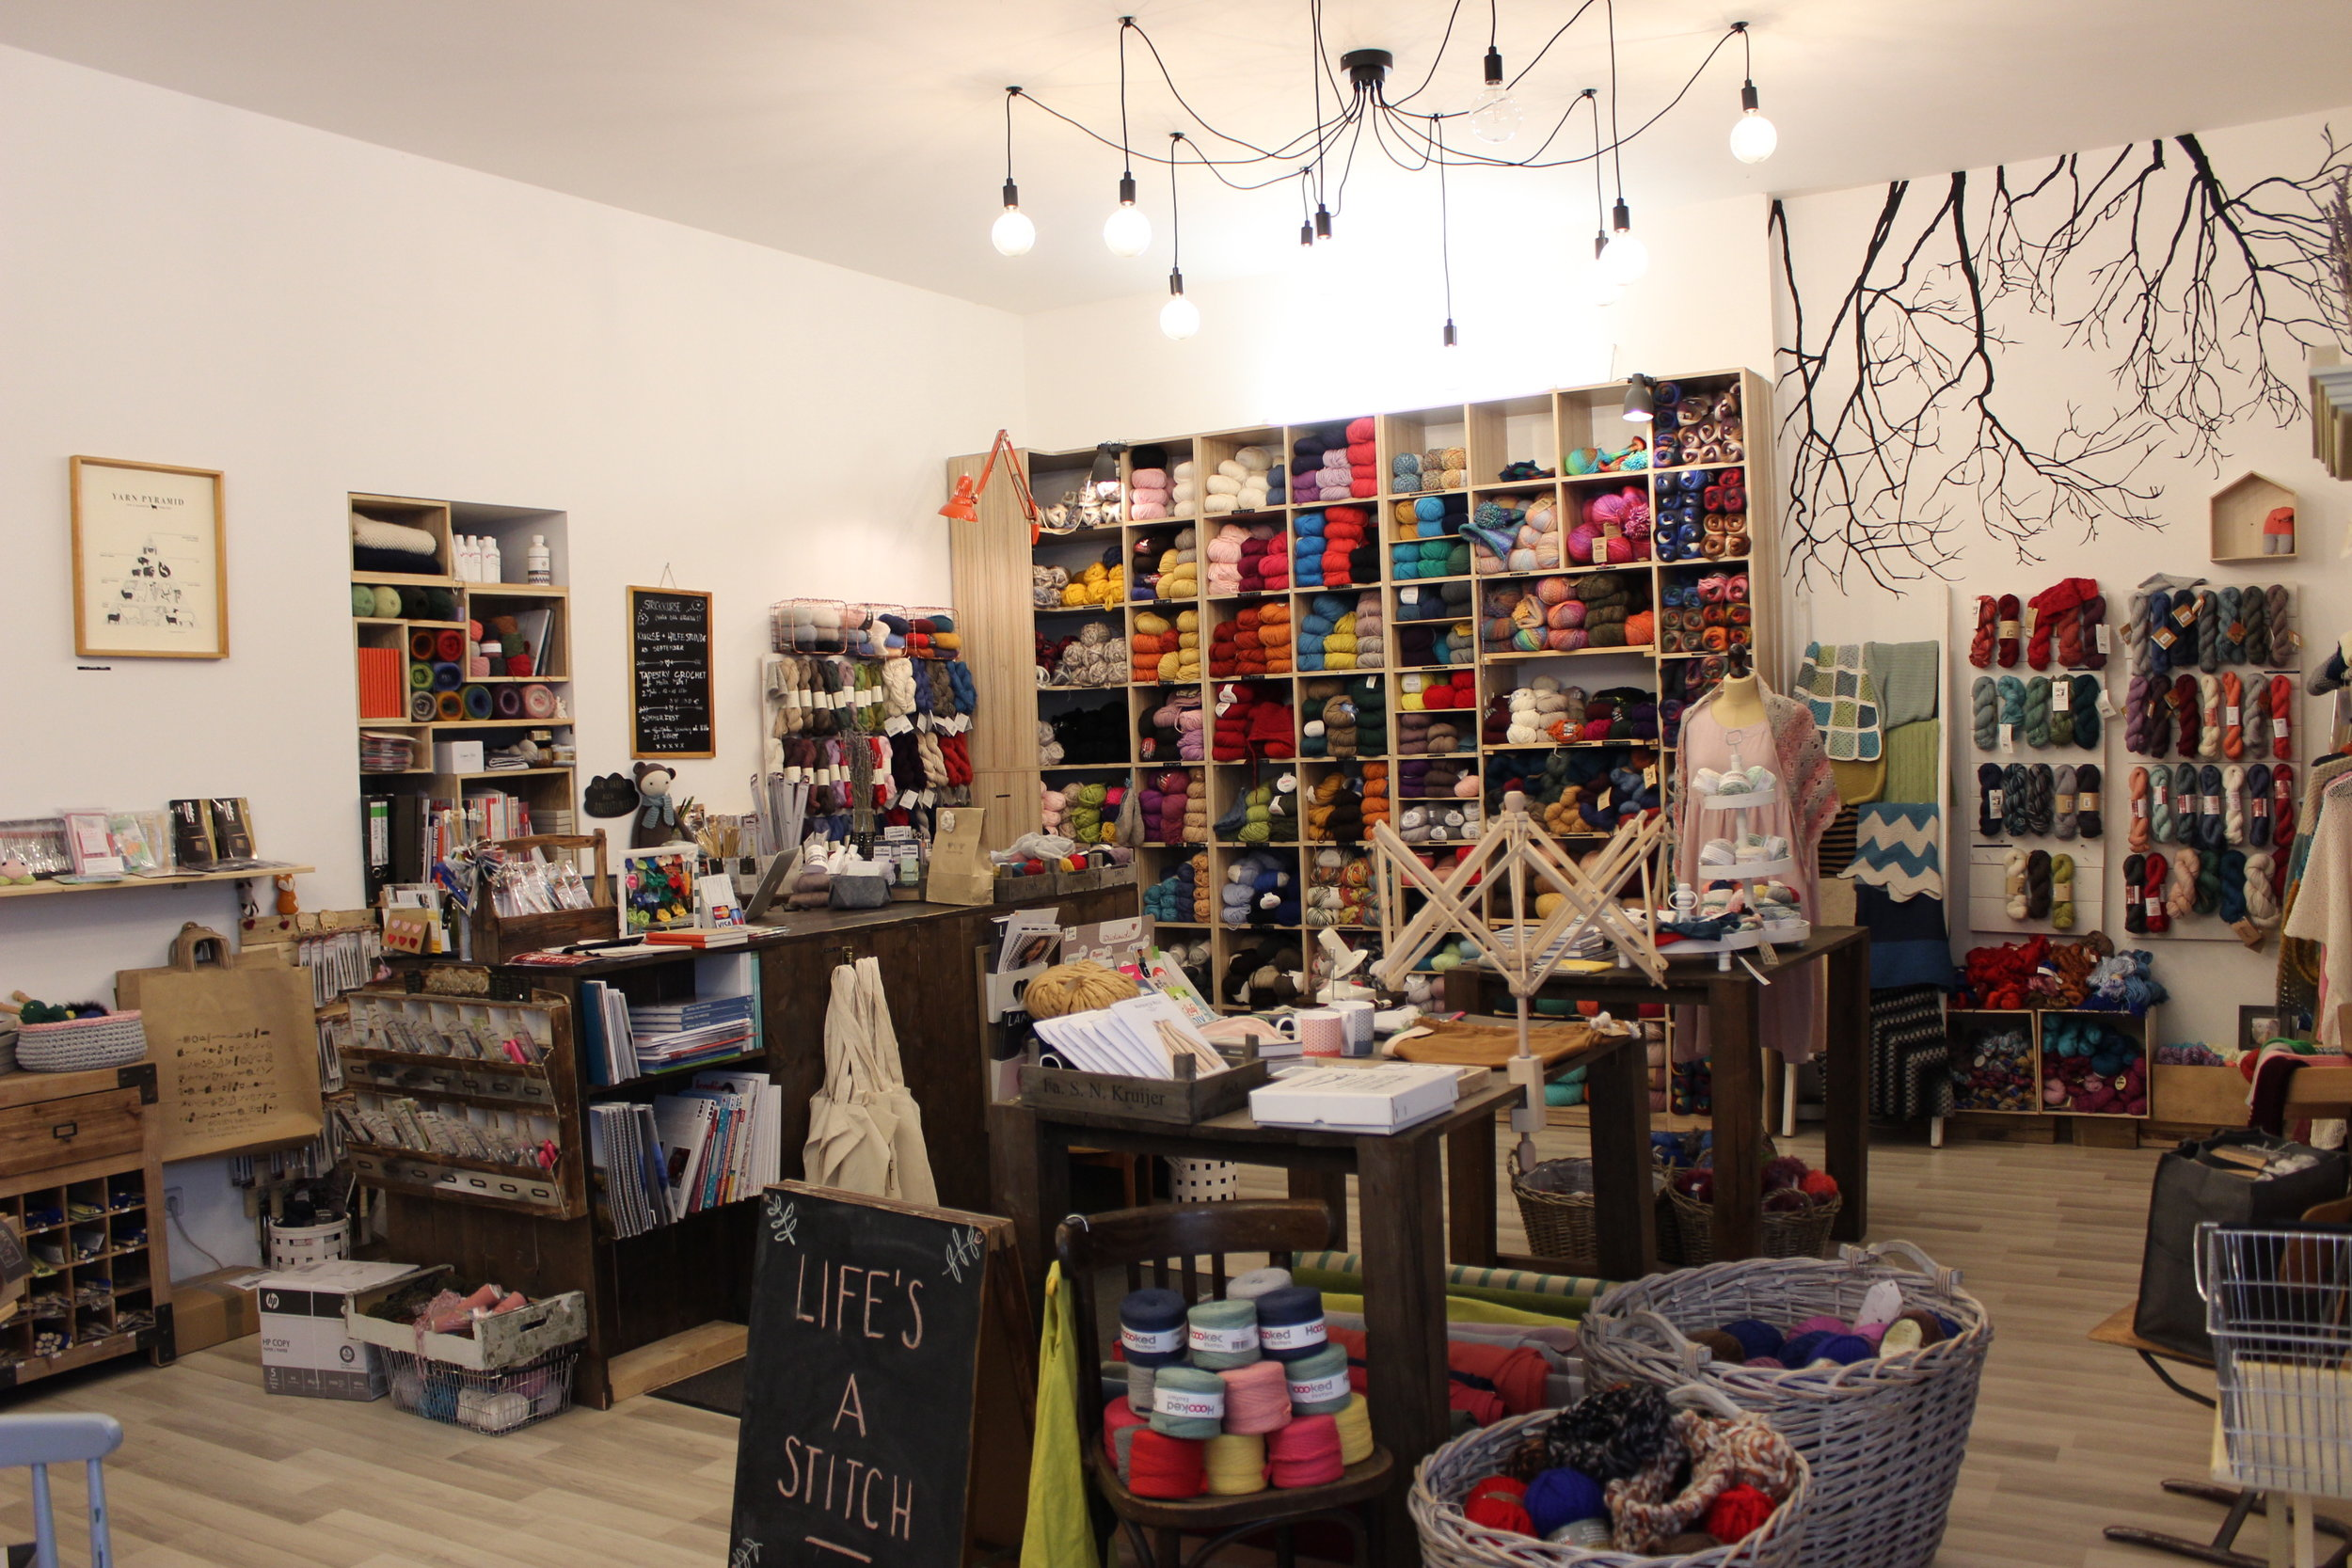 You can see and feel all the love that goes into curating and setting up the shop in every corner.